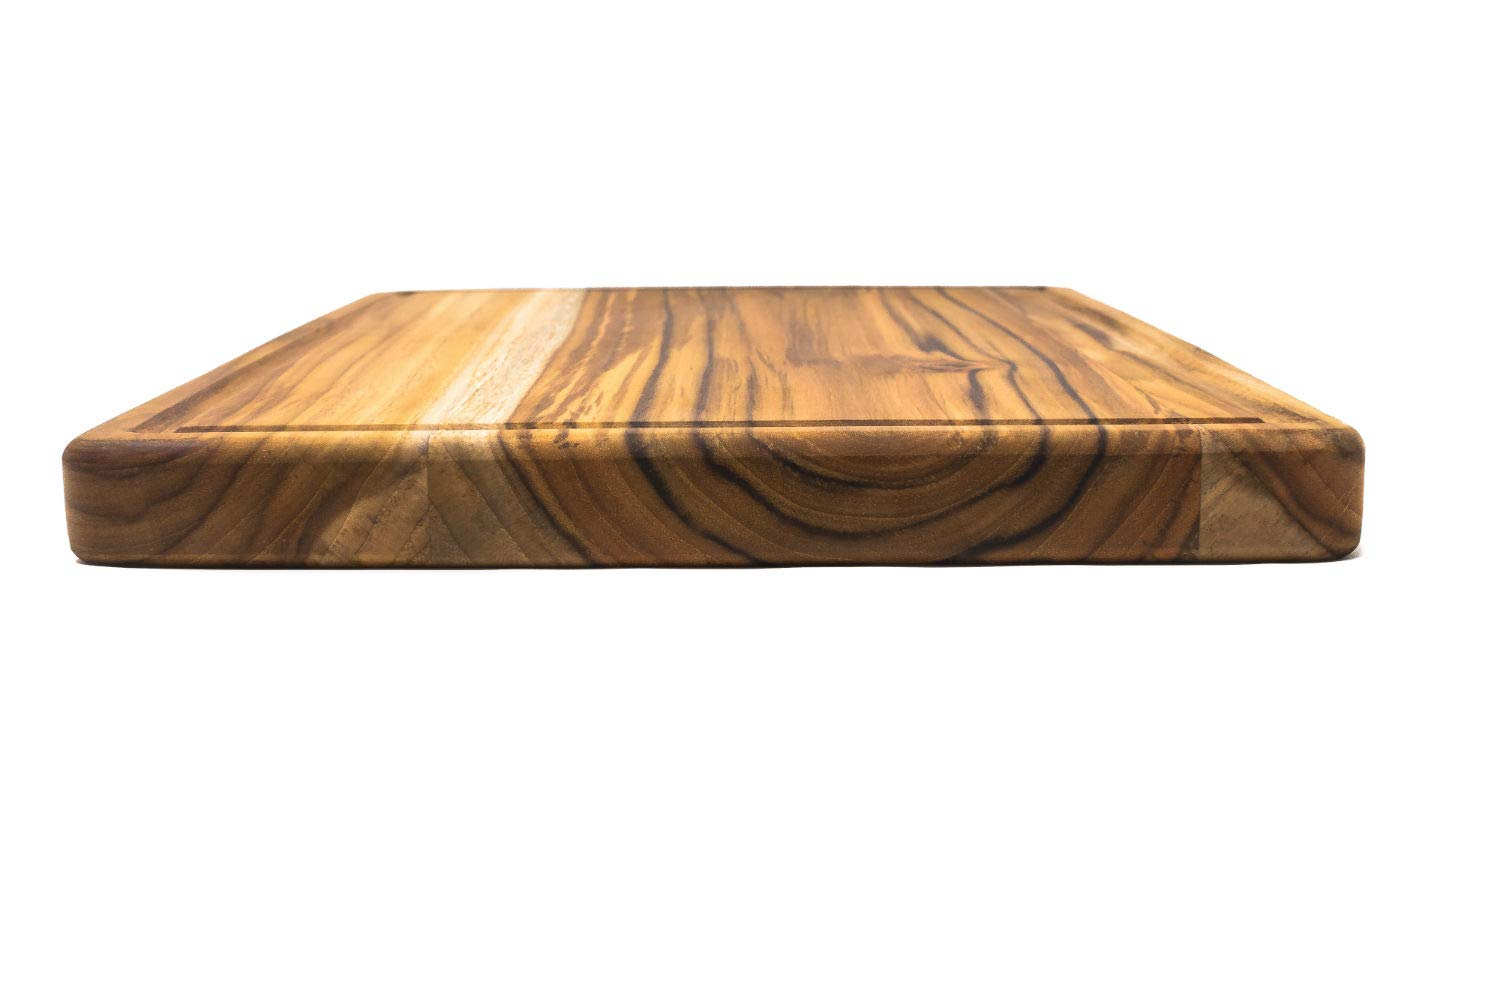 Large Reversible Teak Wood Cutting Board with Juice Groove - Hardwood Chopping Block and Serving Tray (17x11x1 Inches) by Do it wiser (Image #4)